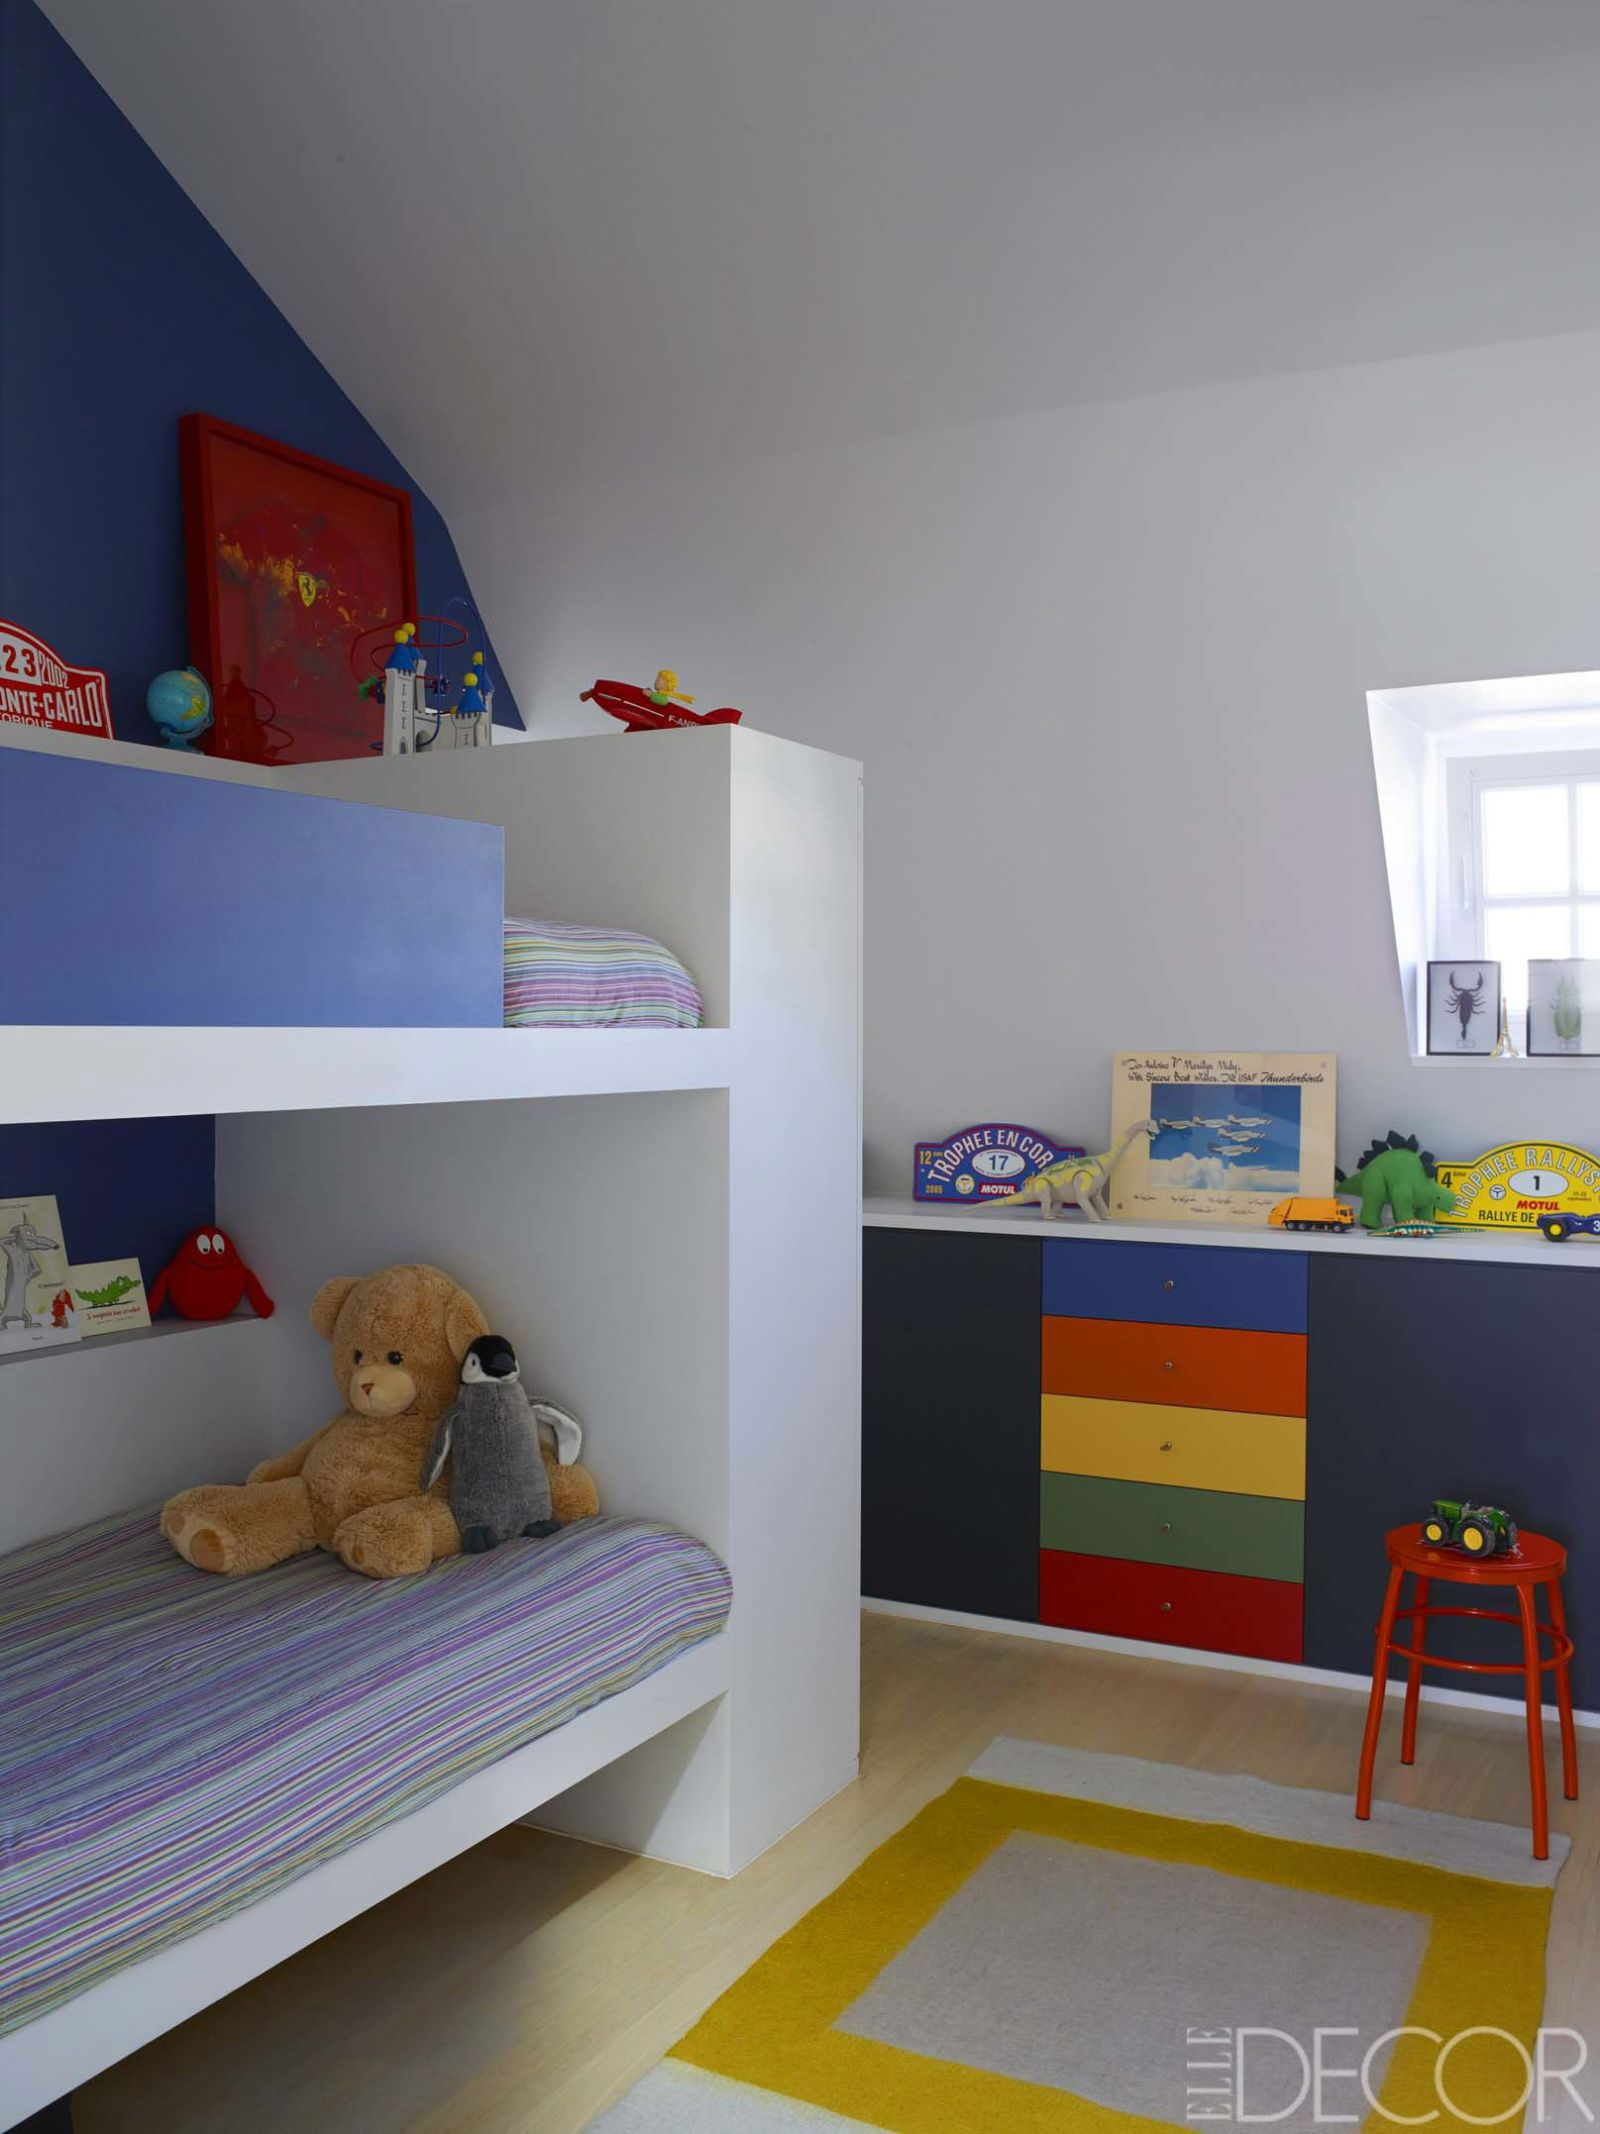 15 Cool Boys Bedroom Ideas - Decorating a Little Boy Room